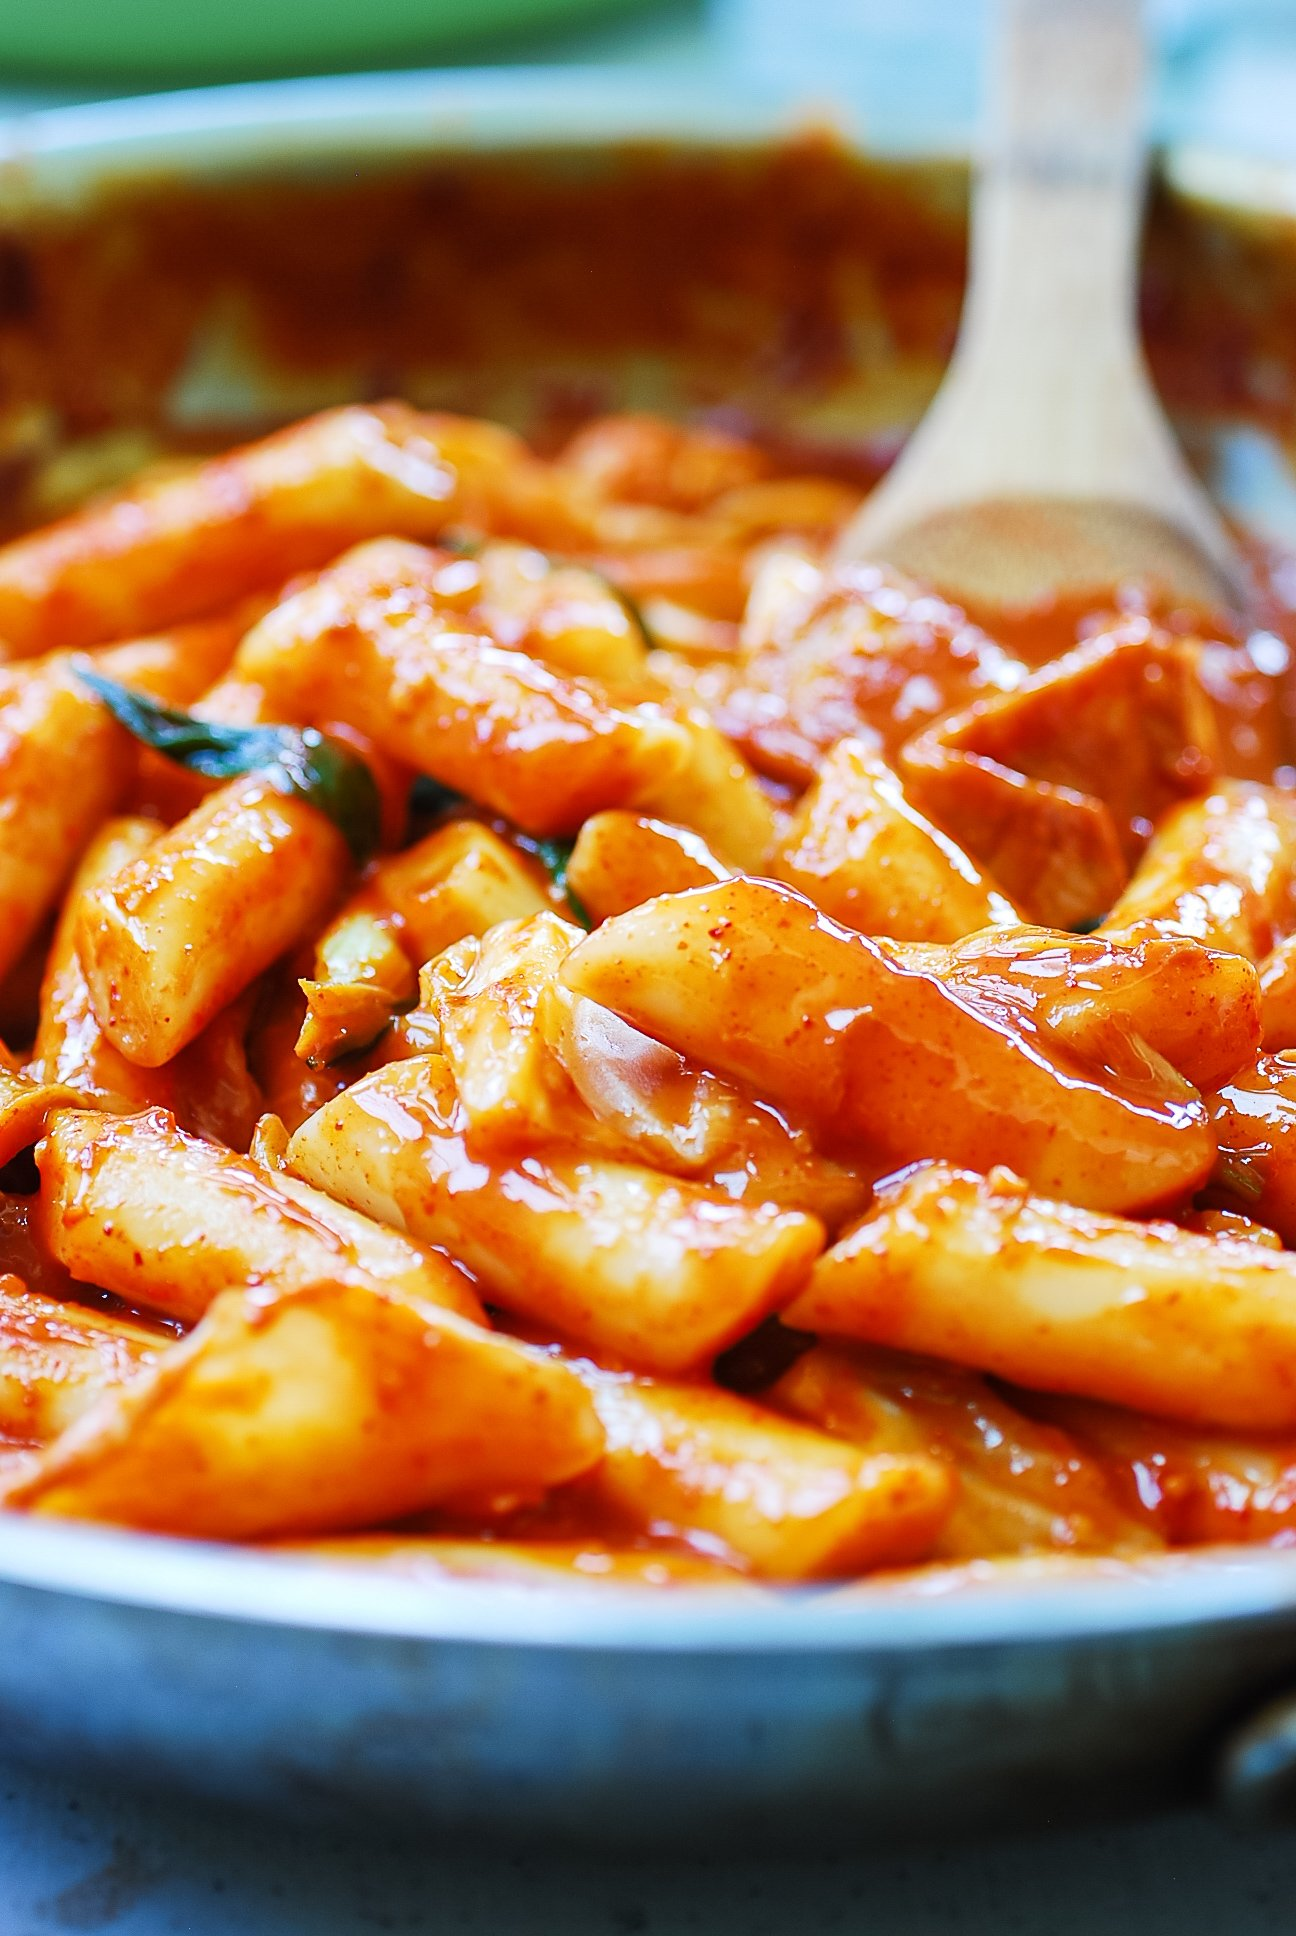 DSC 0845 2 - Tteokbokki (Spicy Stir-fried Rice Cakes)